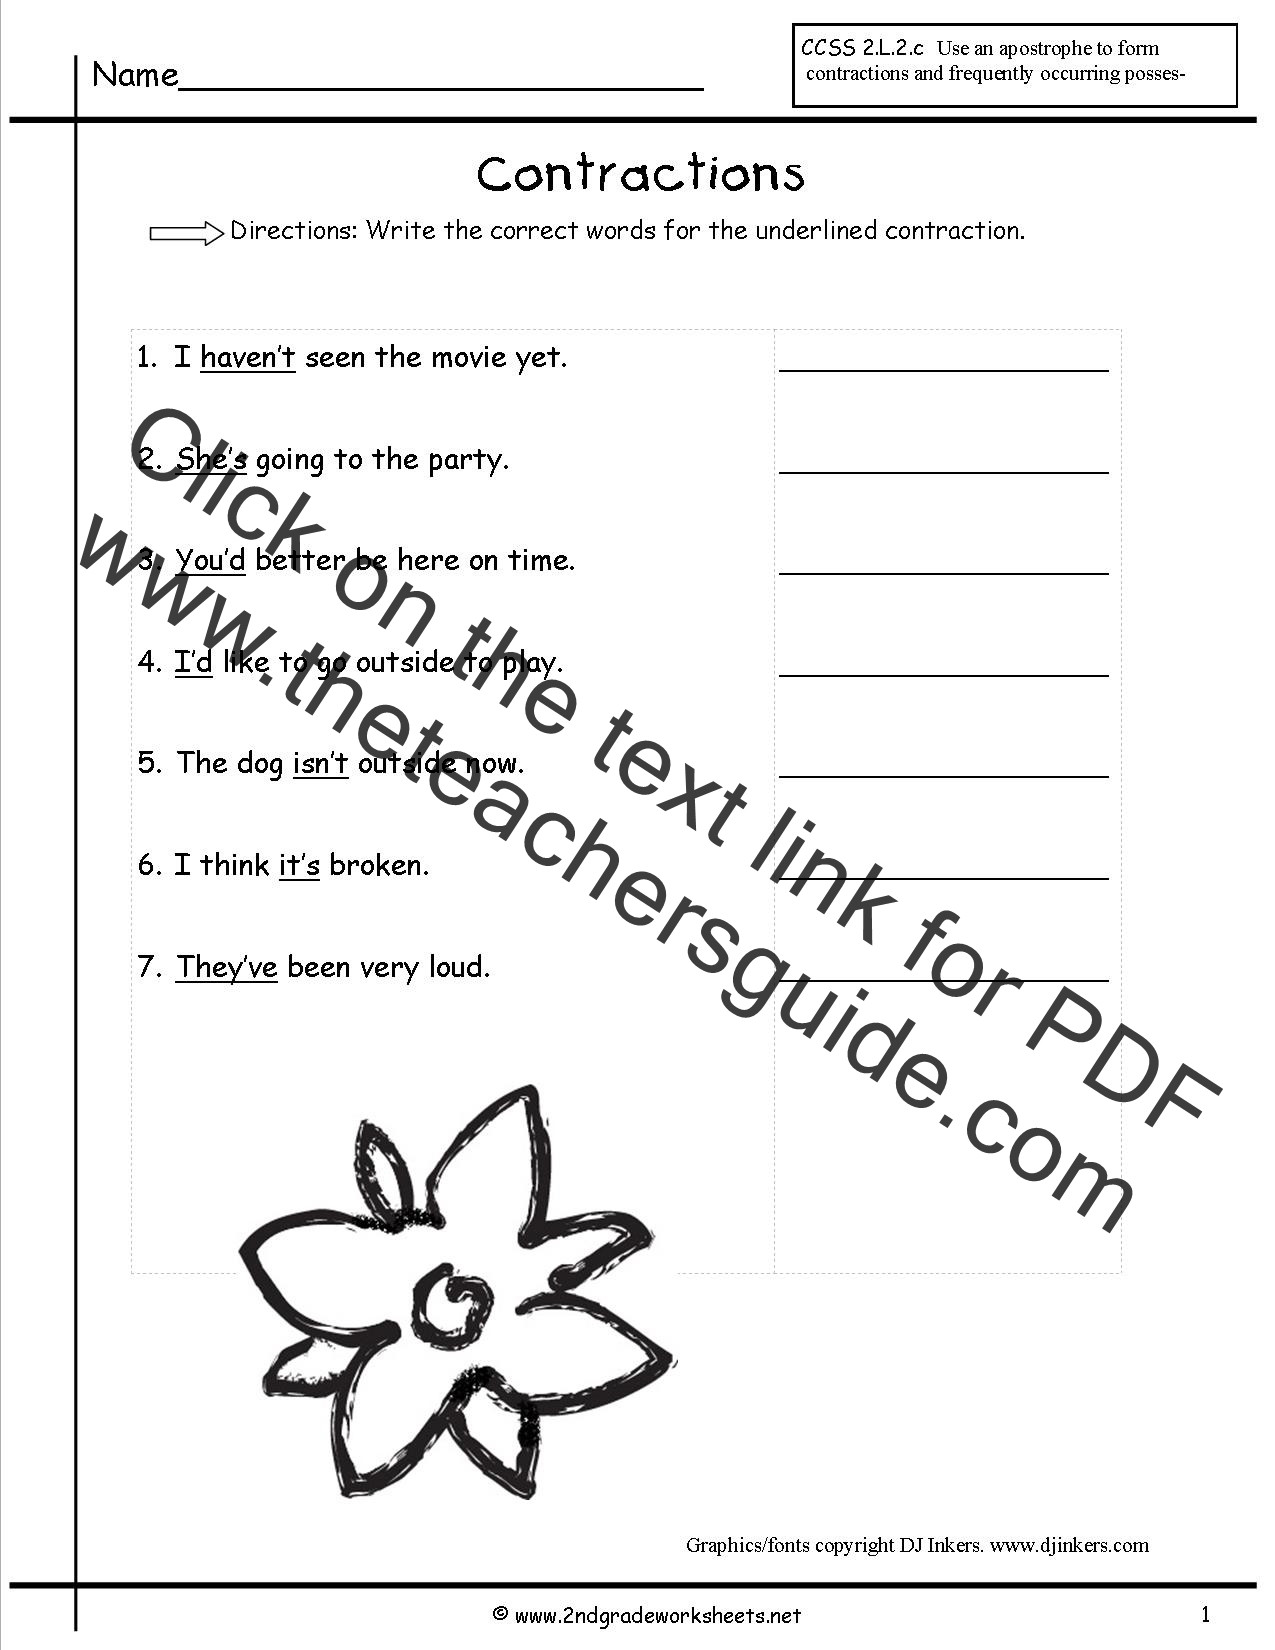 Contractions Worksheet 3rd Grade Free Contractions Worksheets and Printouts